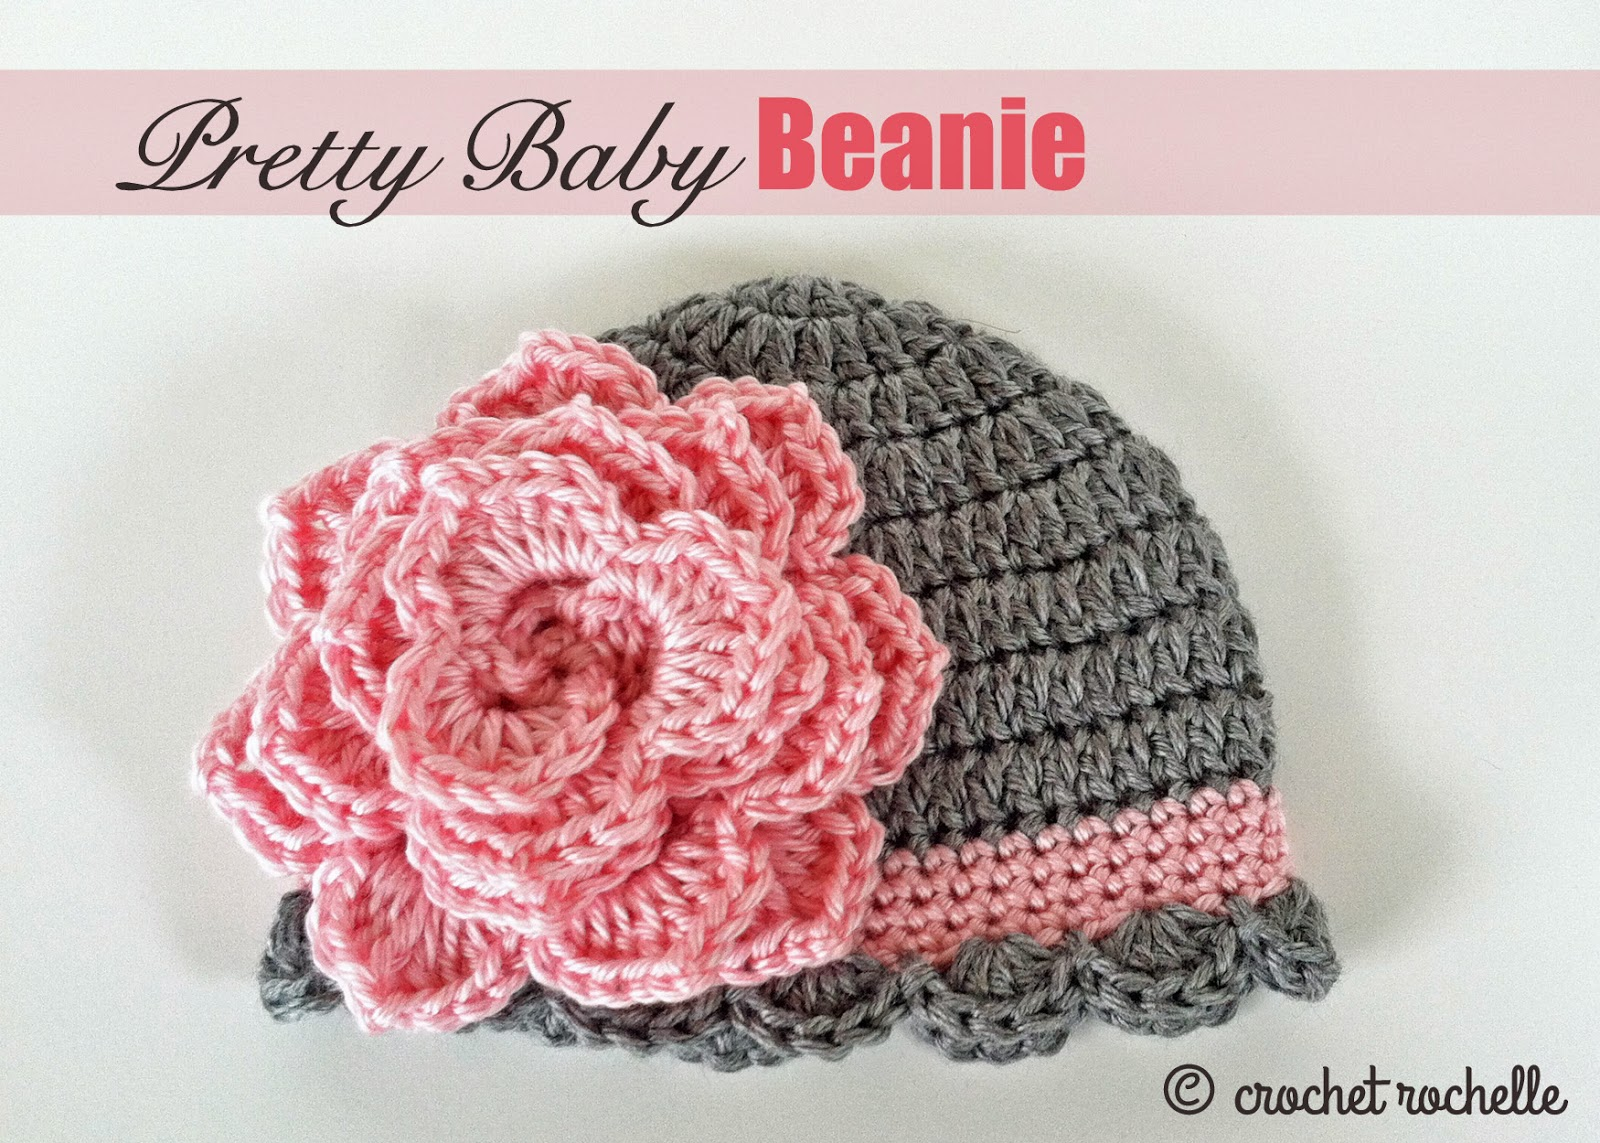 Crocheted Pretty Baby Beanie [FREE Crochet Pattern]